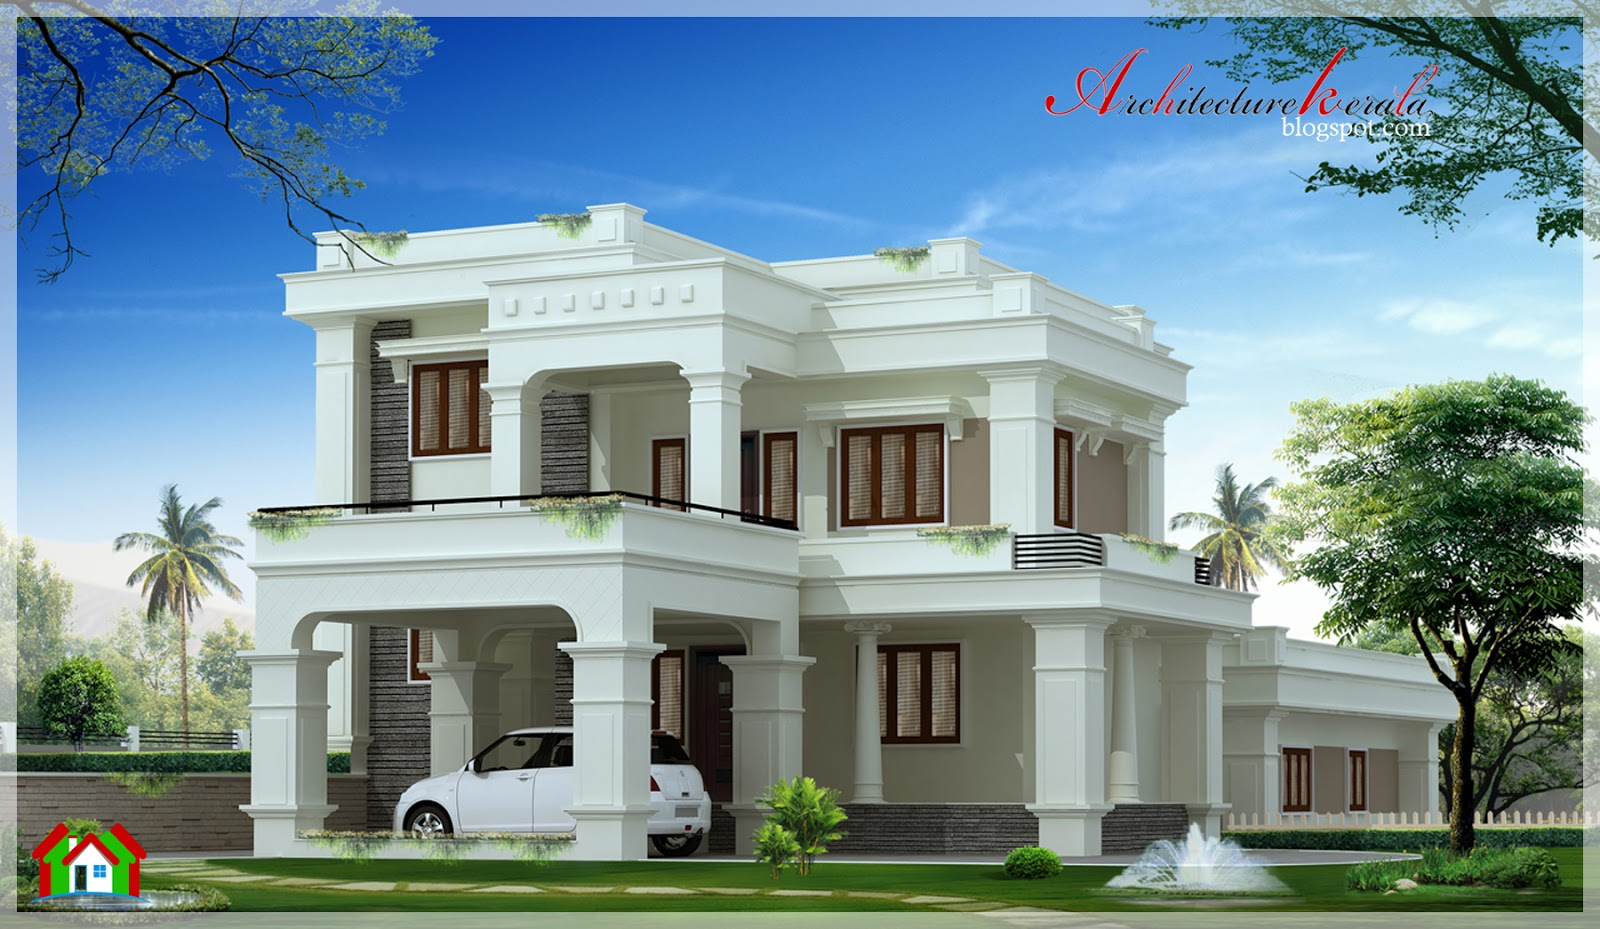 Architecture kerala 2900 square feet beautiful kerala for Looking for house plans